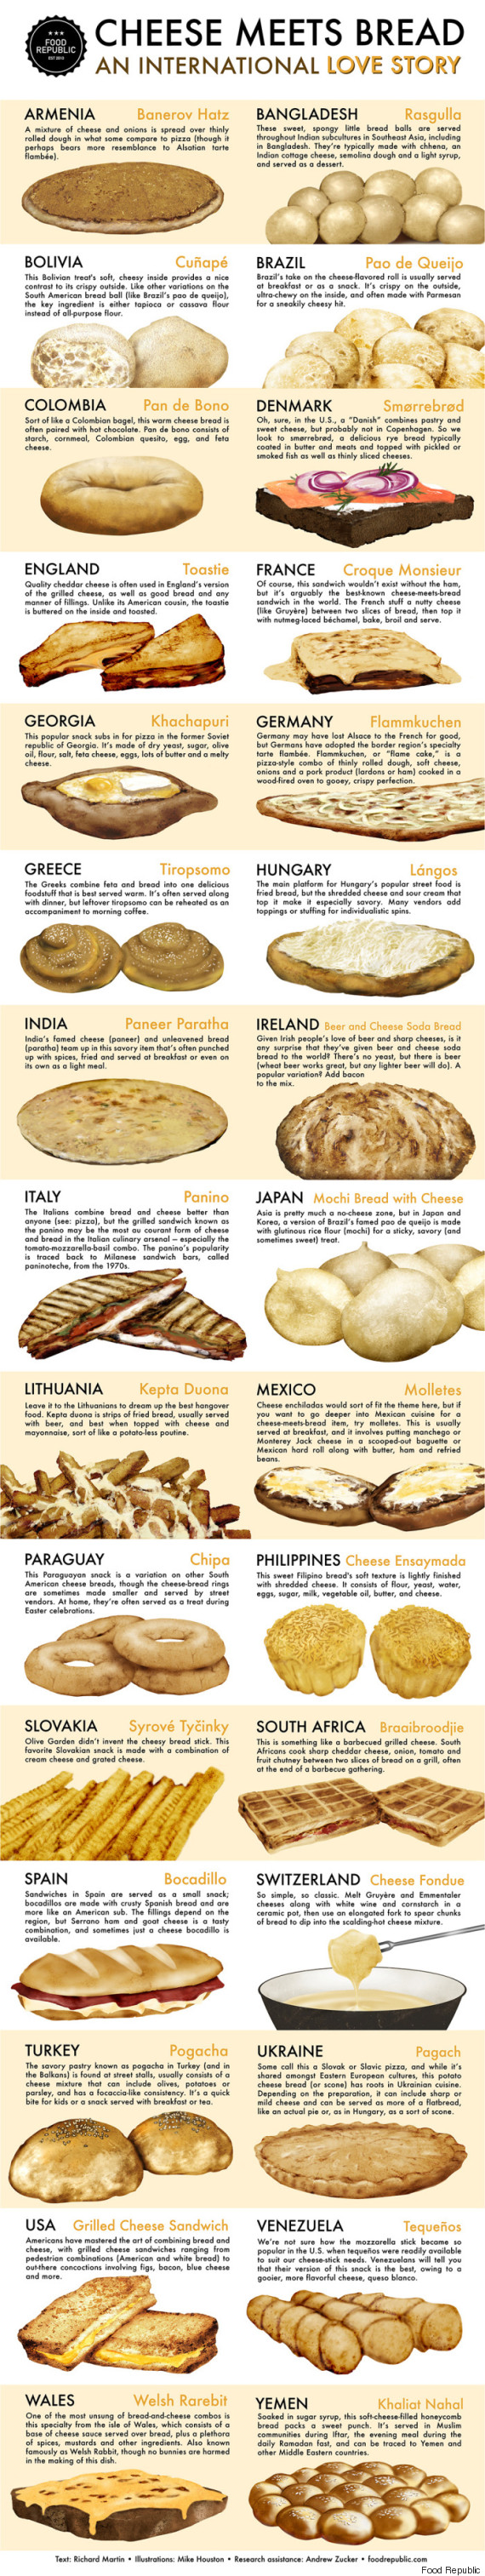 cheese and bread dishes